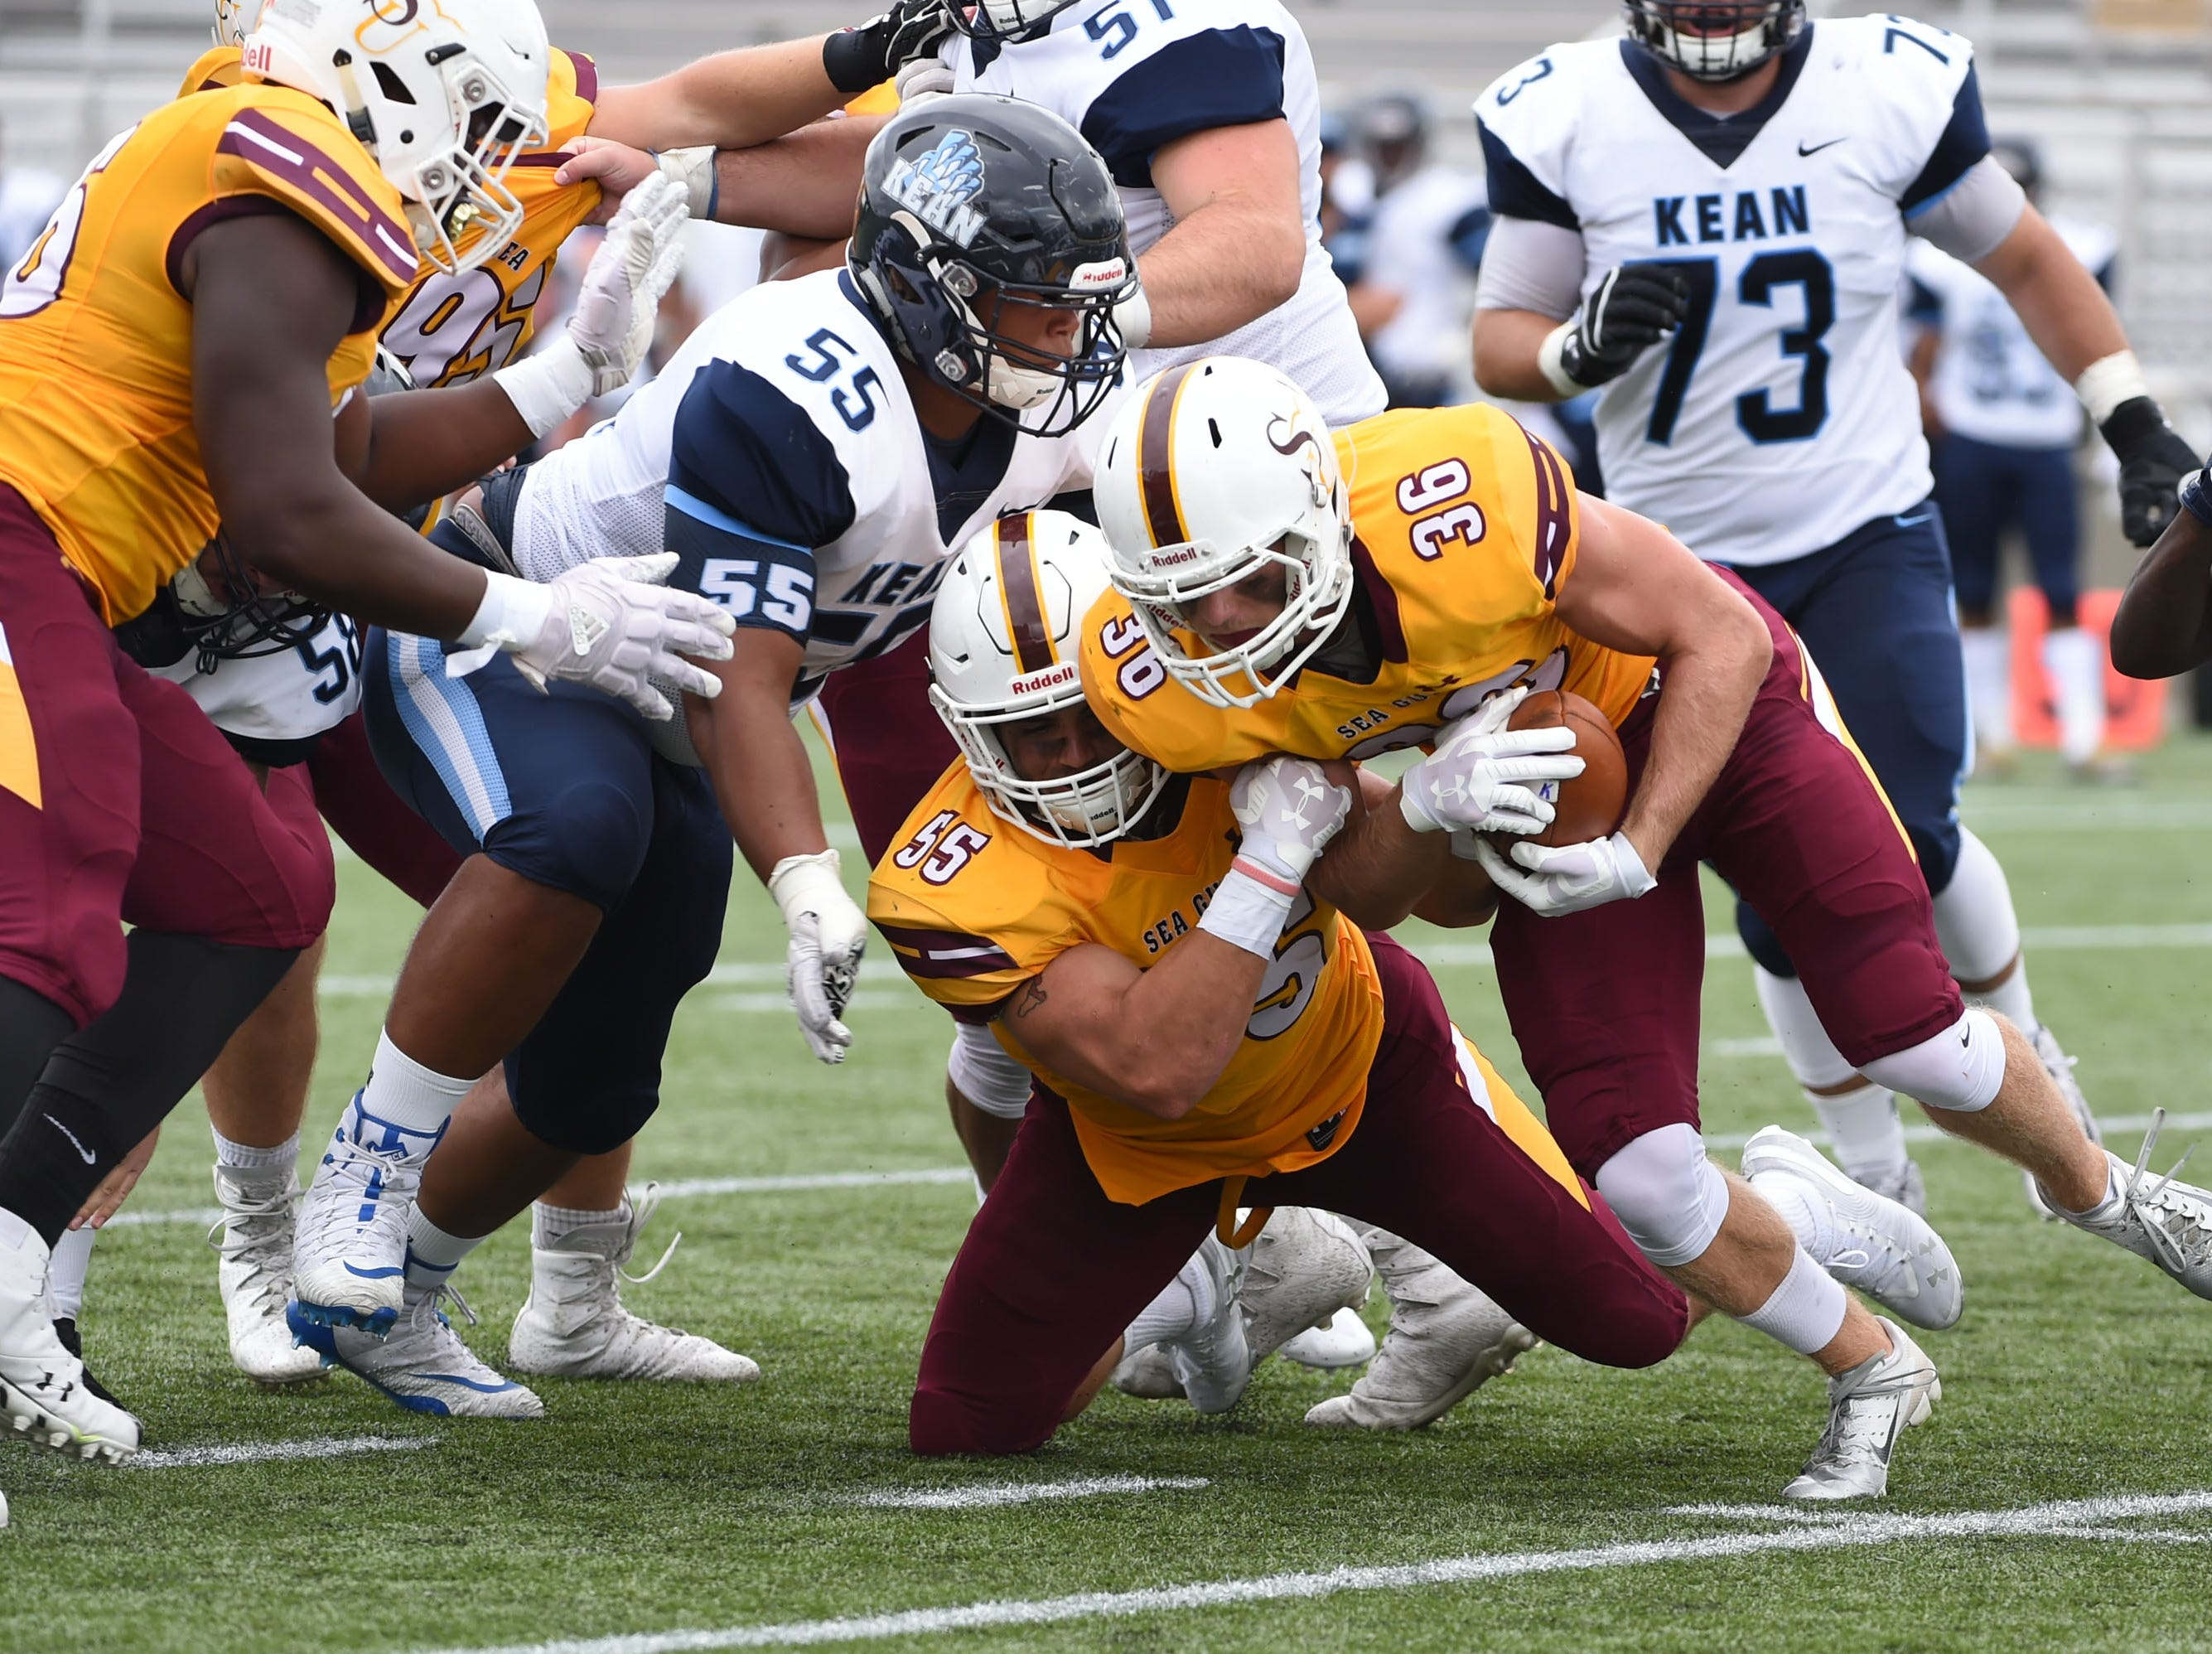 Salisbury's Sean Carrol (36) with a fumble recovery against Kean on Saturday, Sept. 15, 2018 at Seagull Stadium.